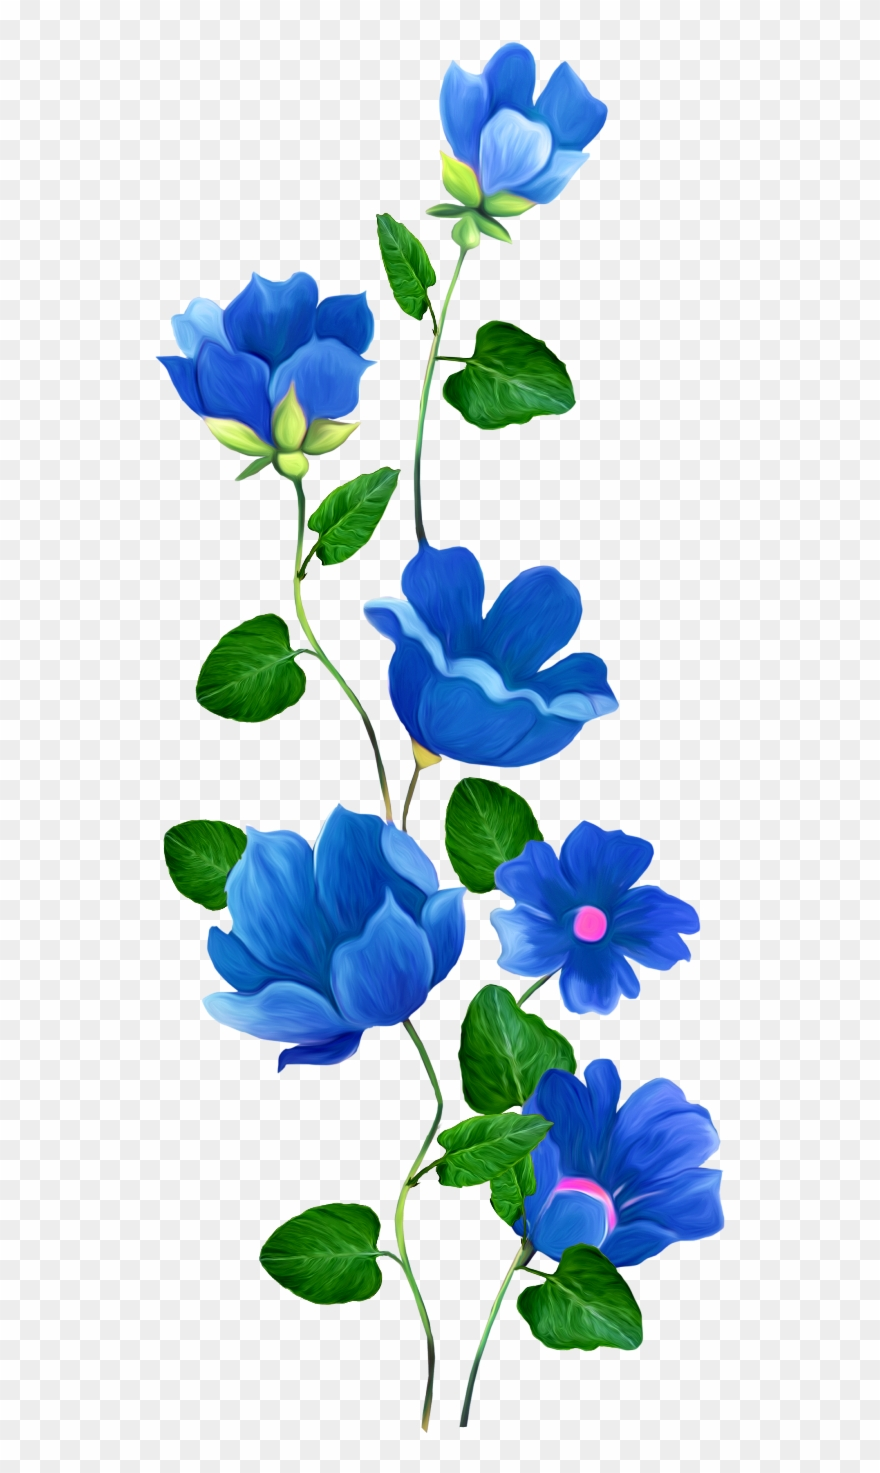 Download Flower Rose Blue Pin Clip Art - Blue Flower ...